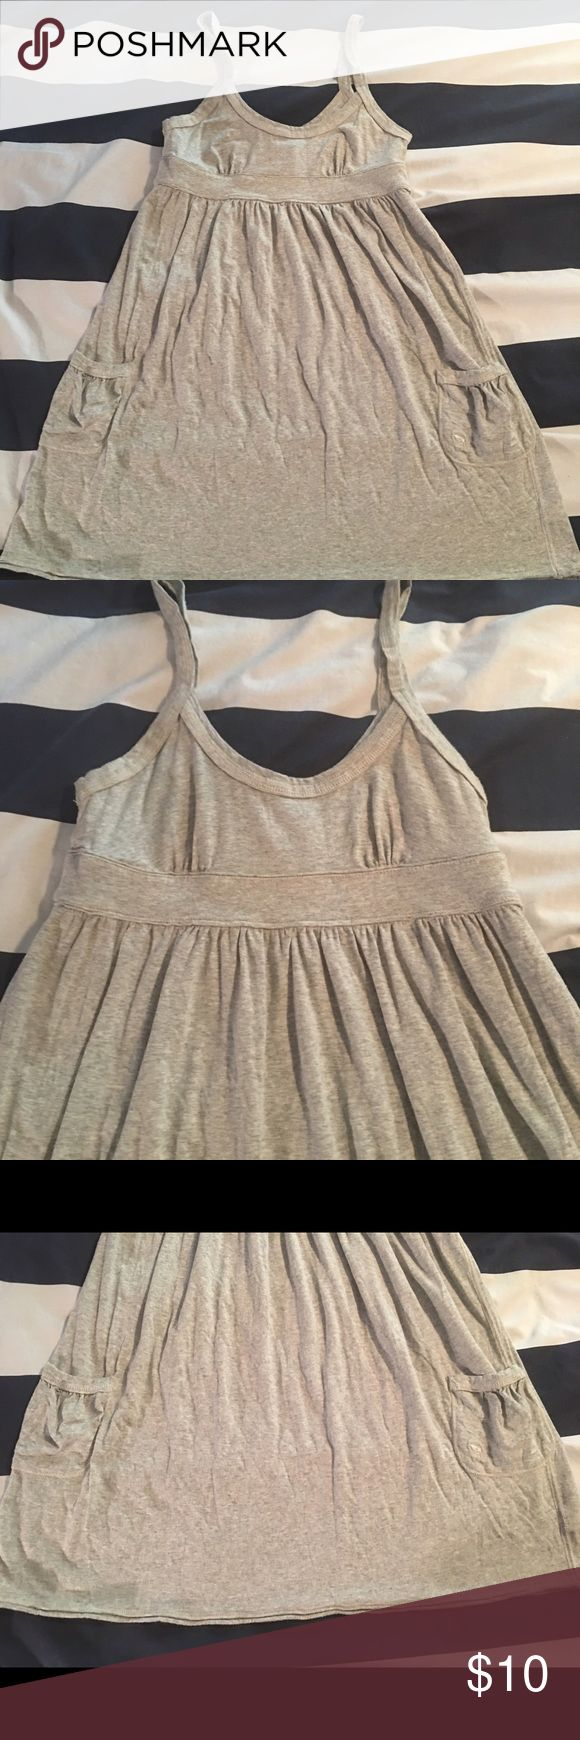 Abercrombie and Fitch tank dress Adorable with leggings and Uggs. Two pockets in excellent condition Abercrombie & Fitch Dresses Mini